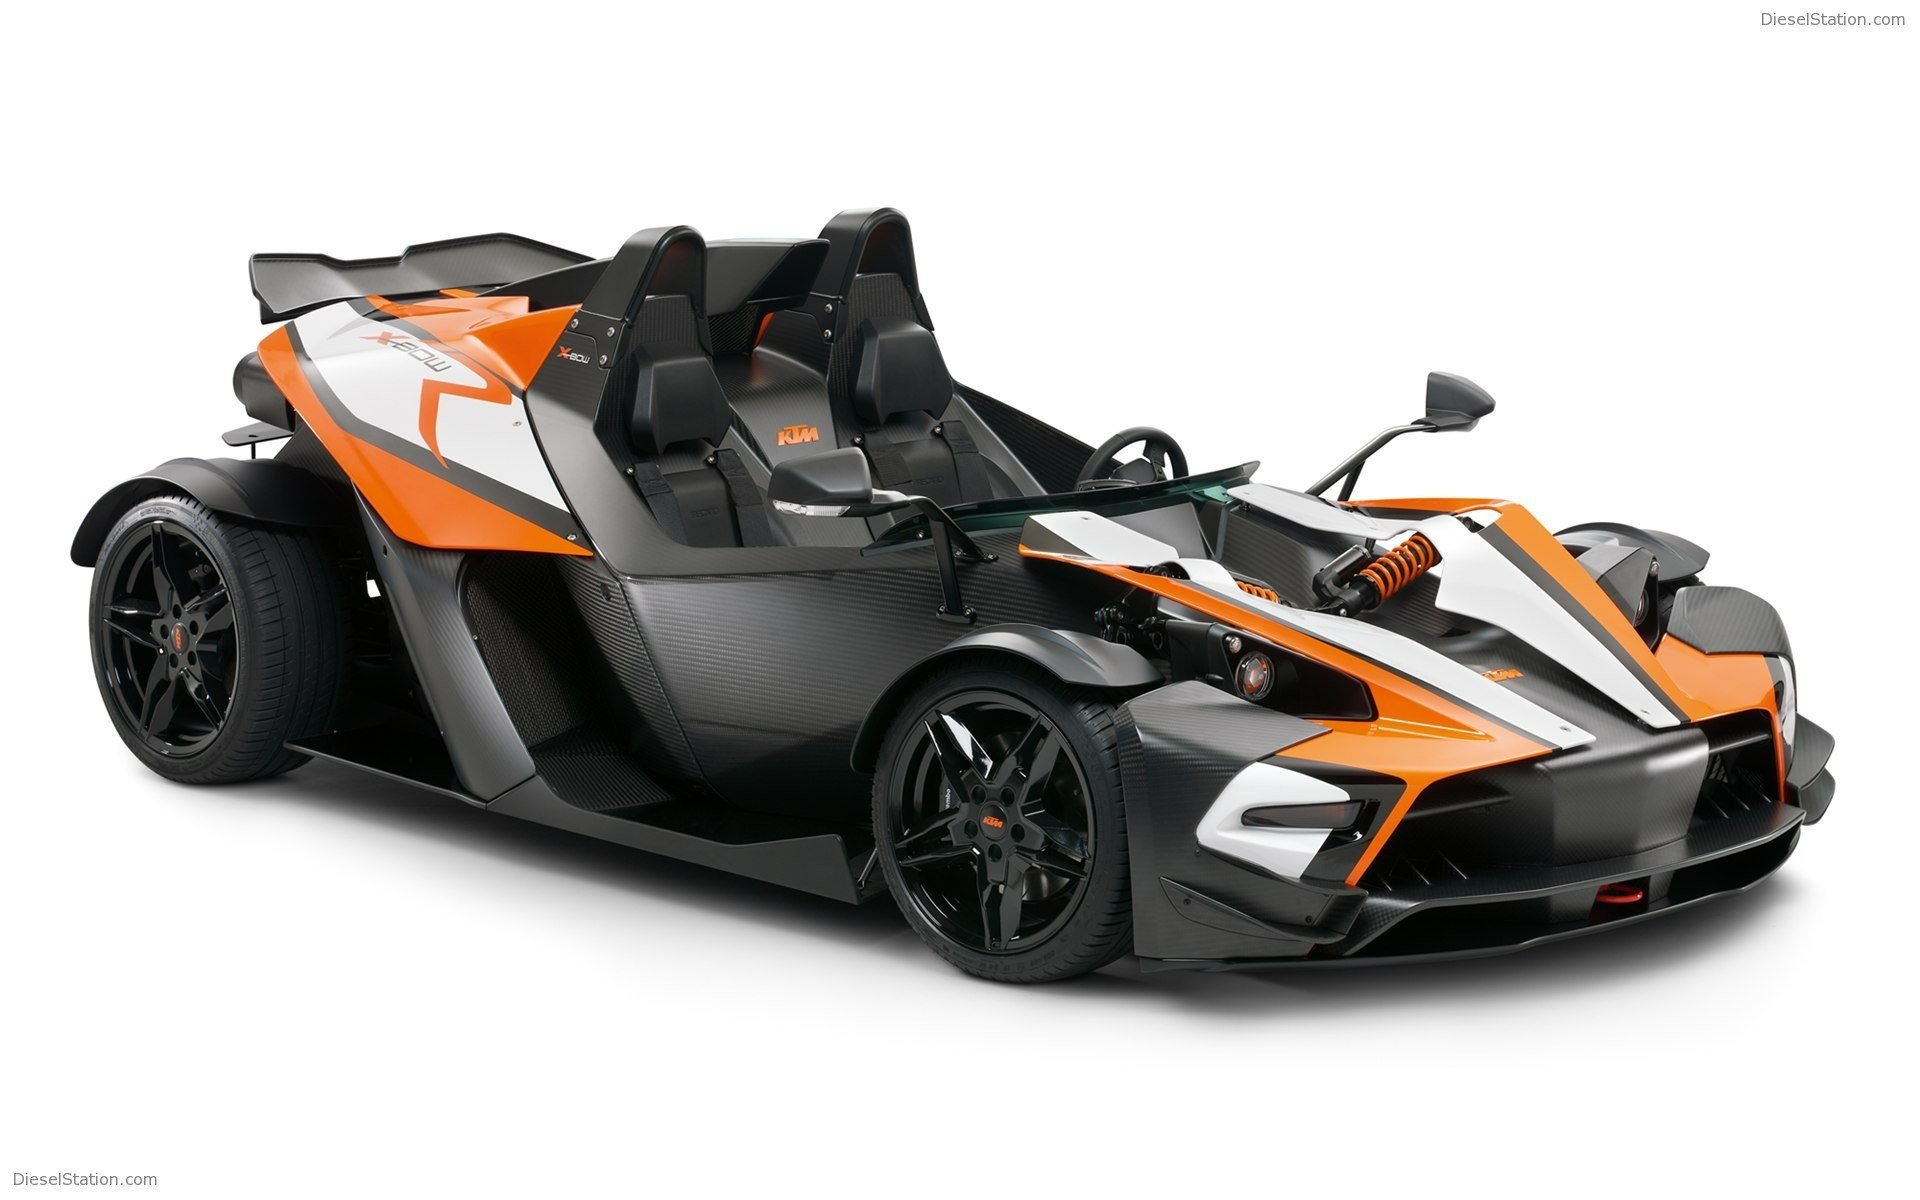 New Ktm X Bow R 2011 Widescreen Exotic Car Wallpapers 08 Of On This Month